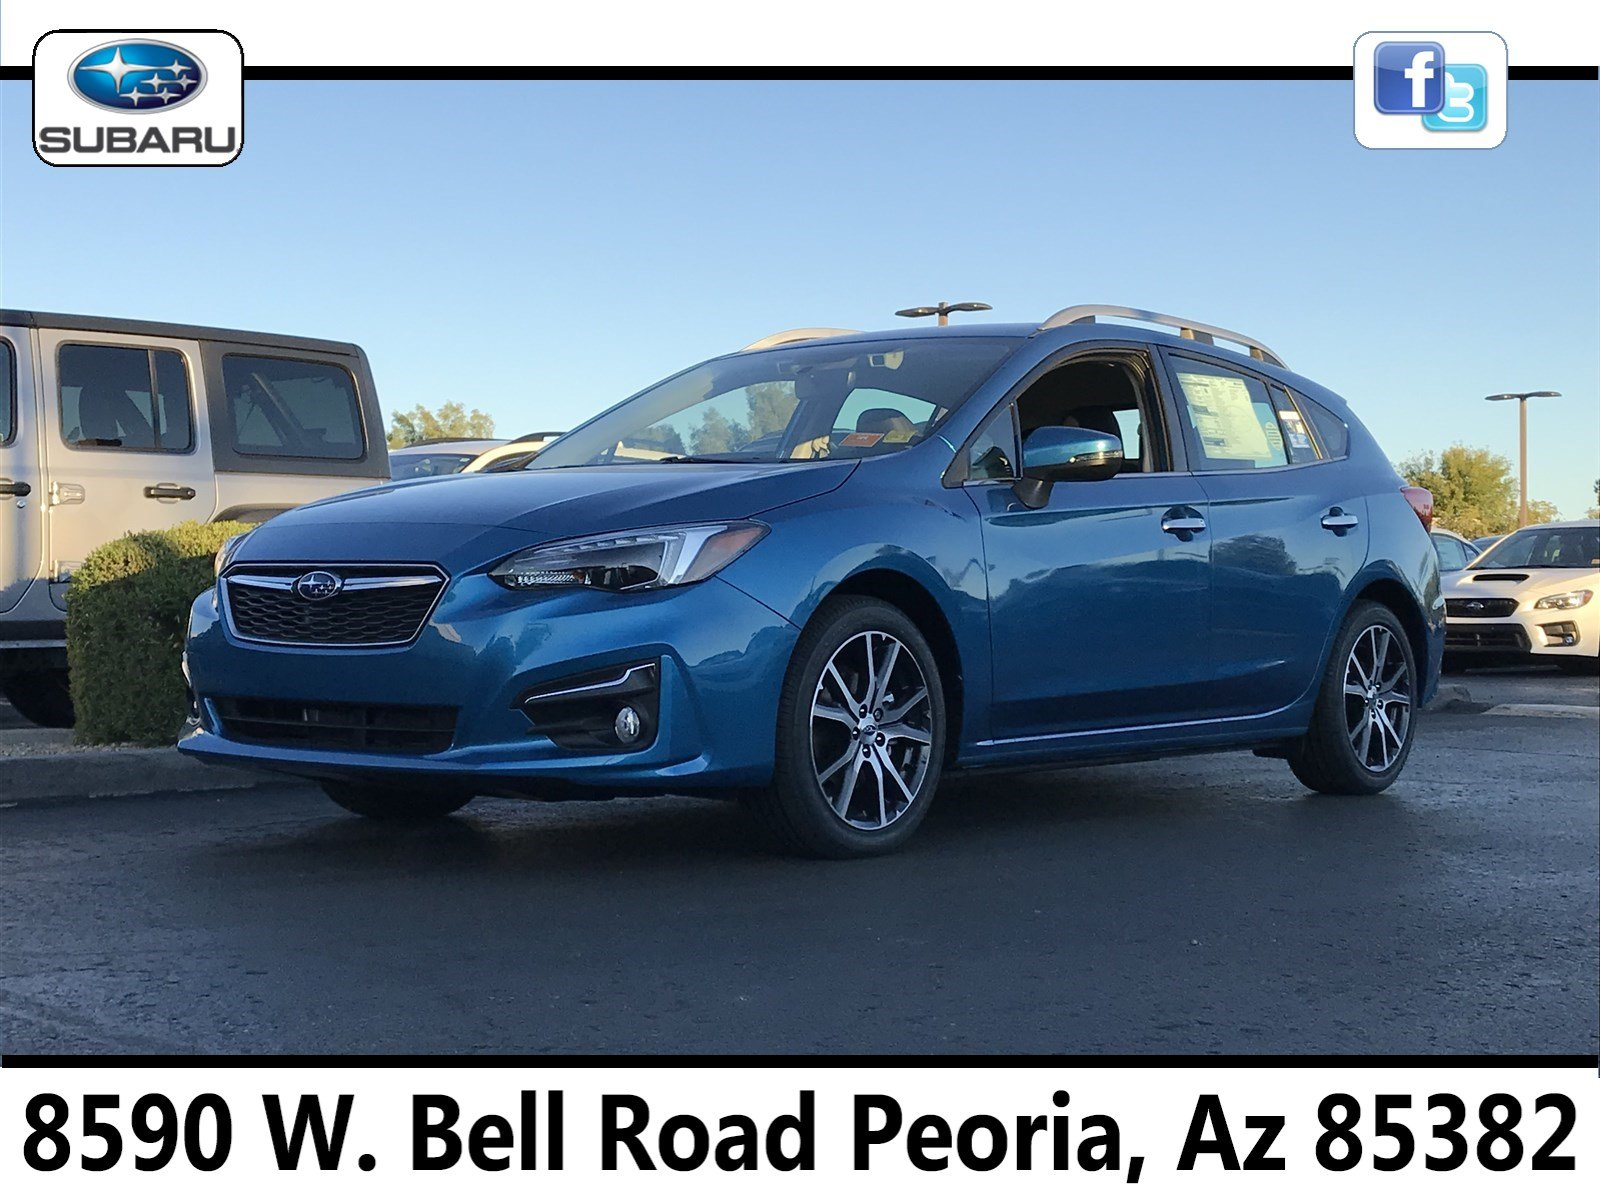 2019 Subaru Impreza 2.0i Limited 5-door S7610